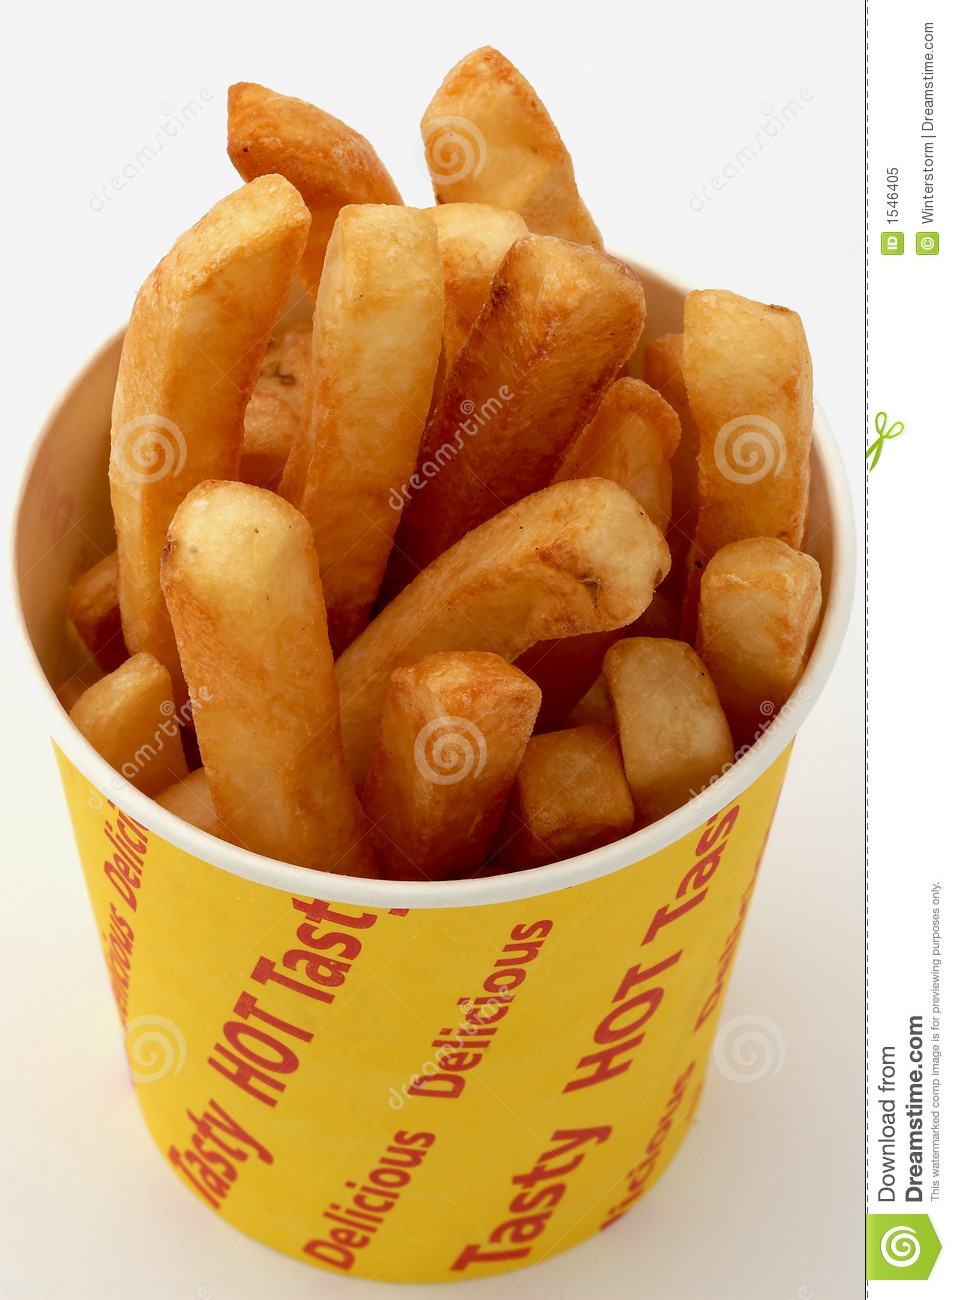 Golden Fries In A Chip Bucket Stock Image - Image: 1546405